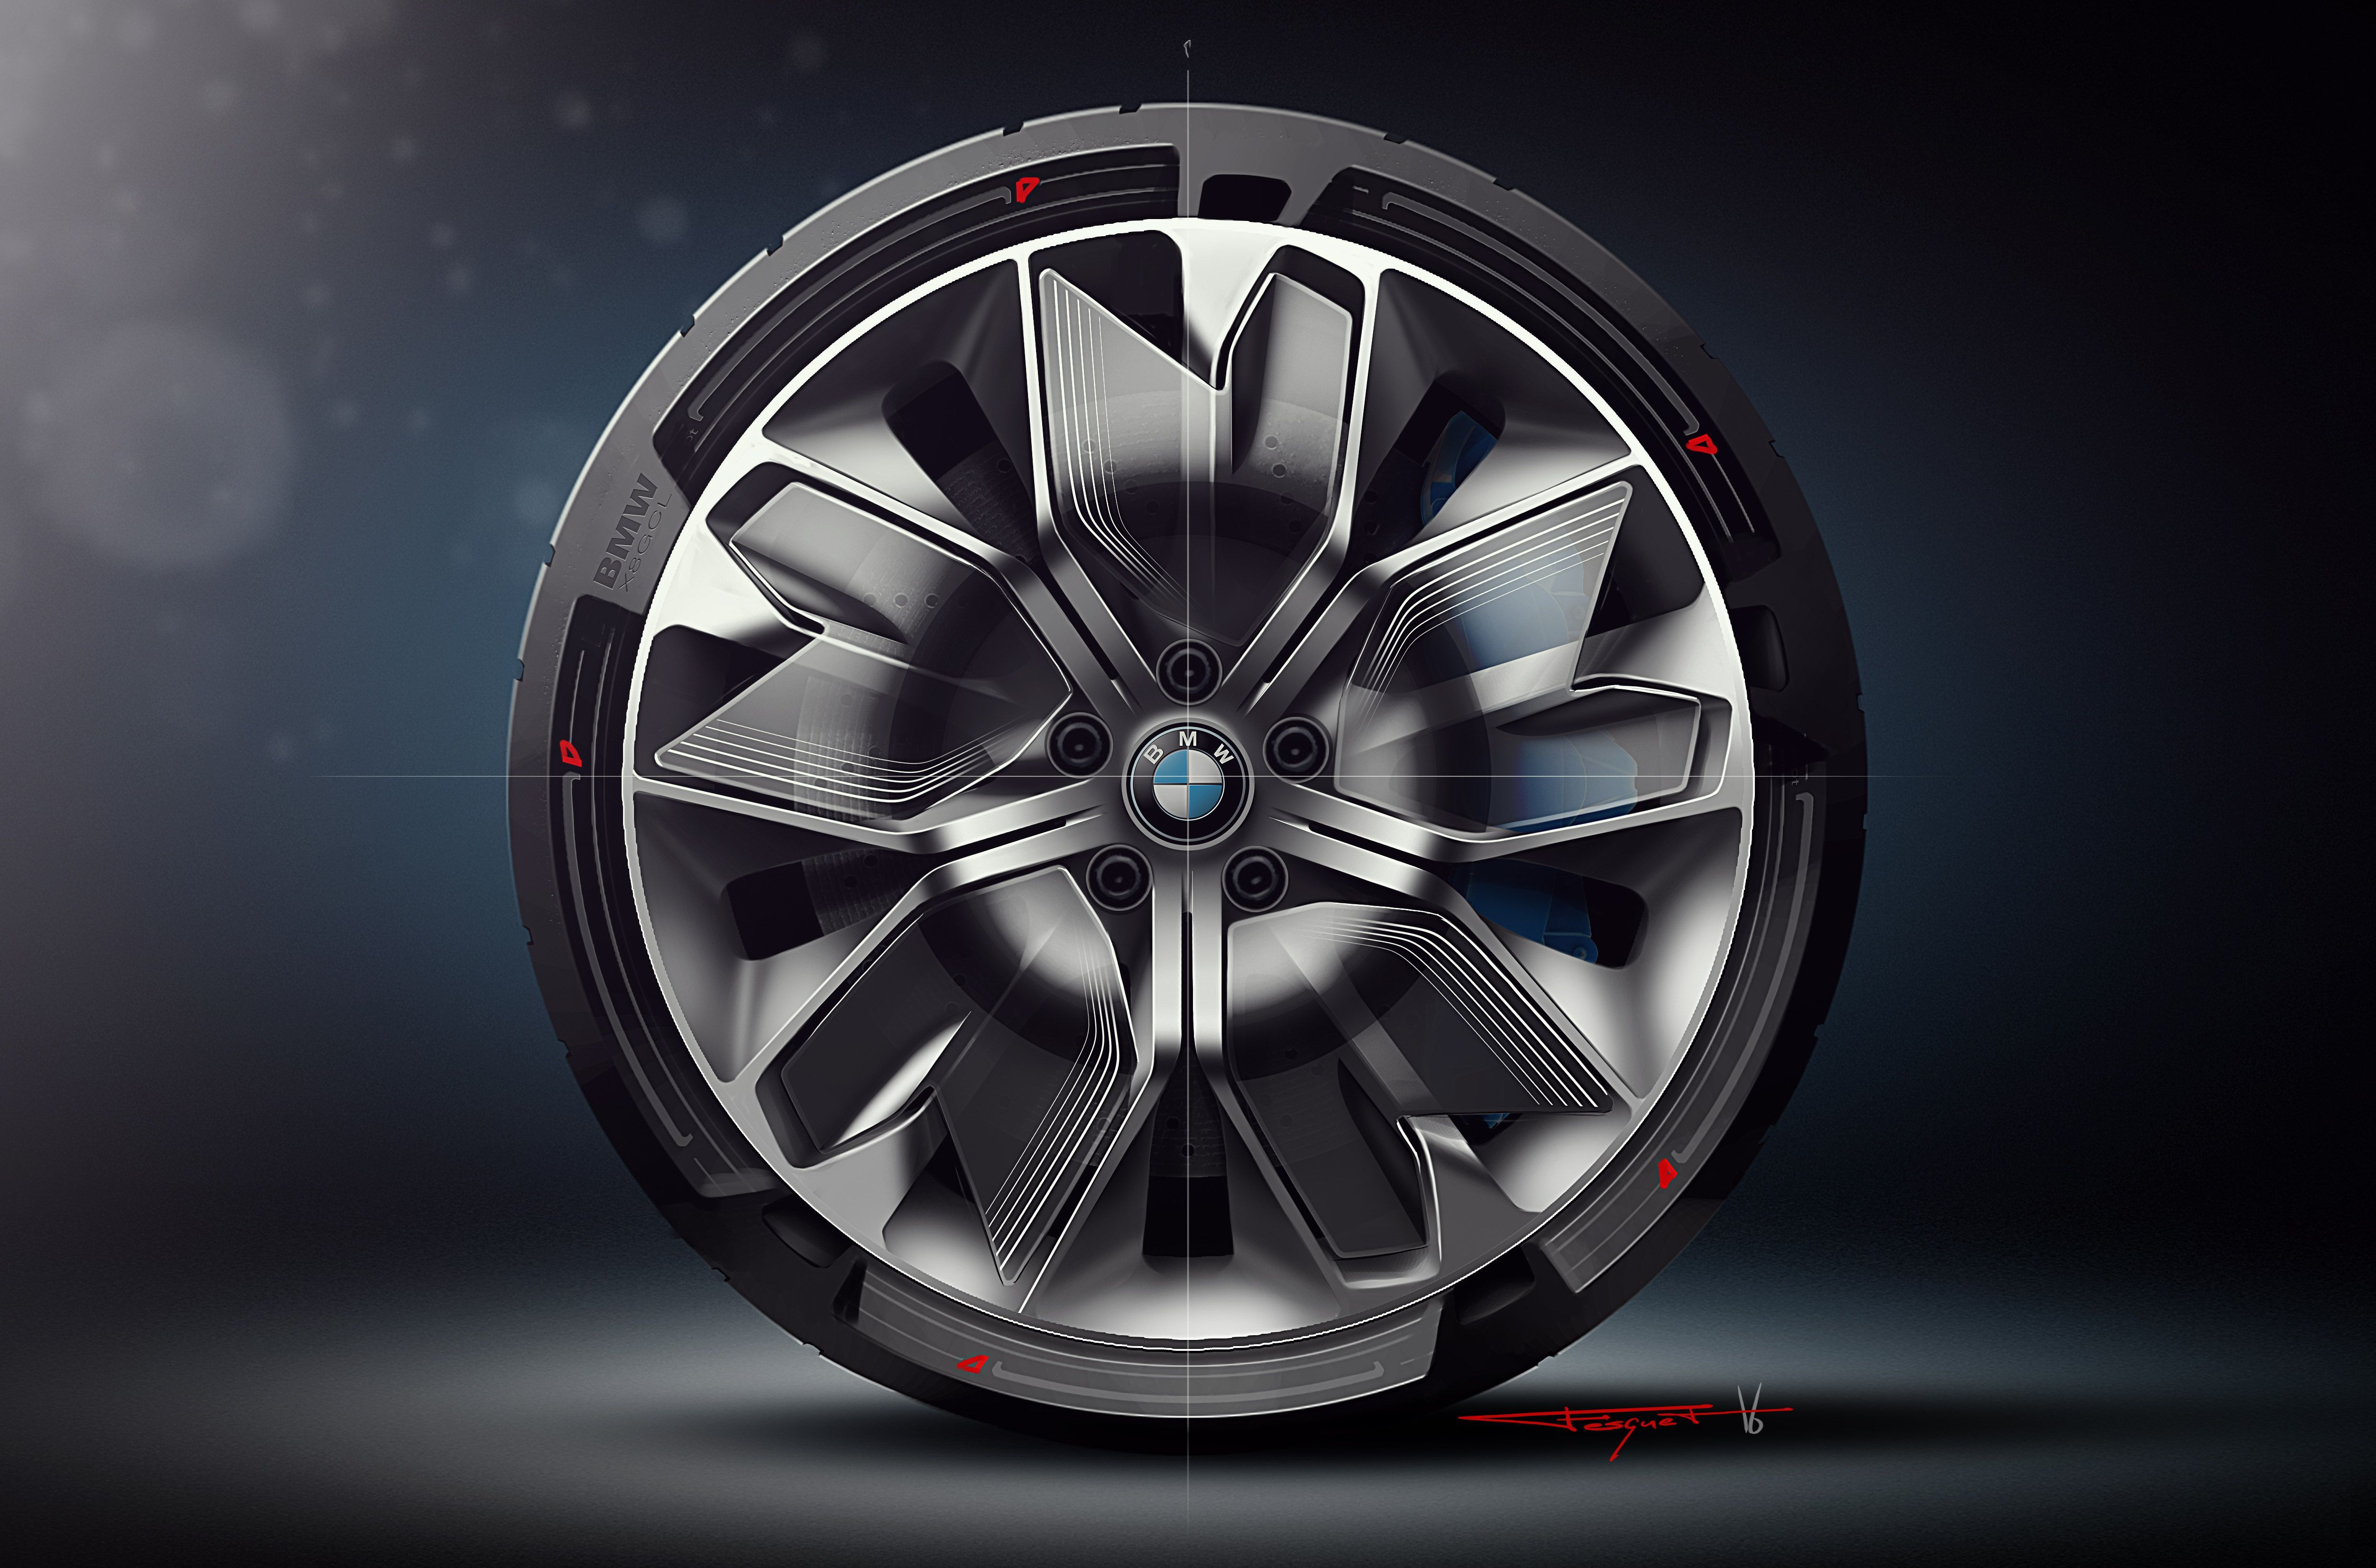 14 Stunning Car Wheels Rims Garage Ideas With Images Rims For